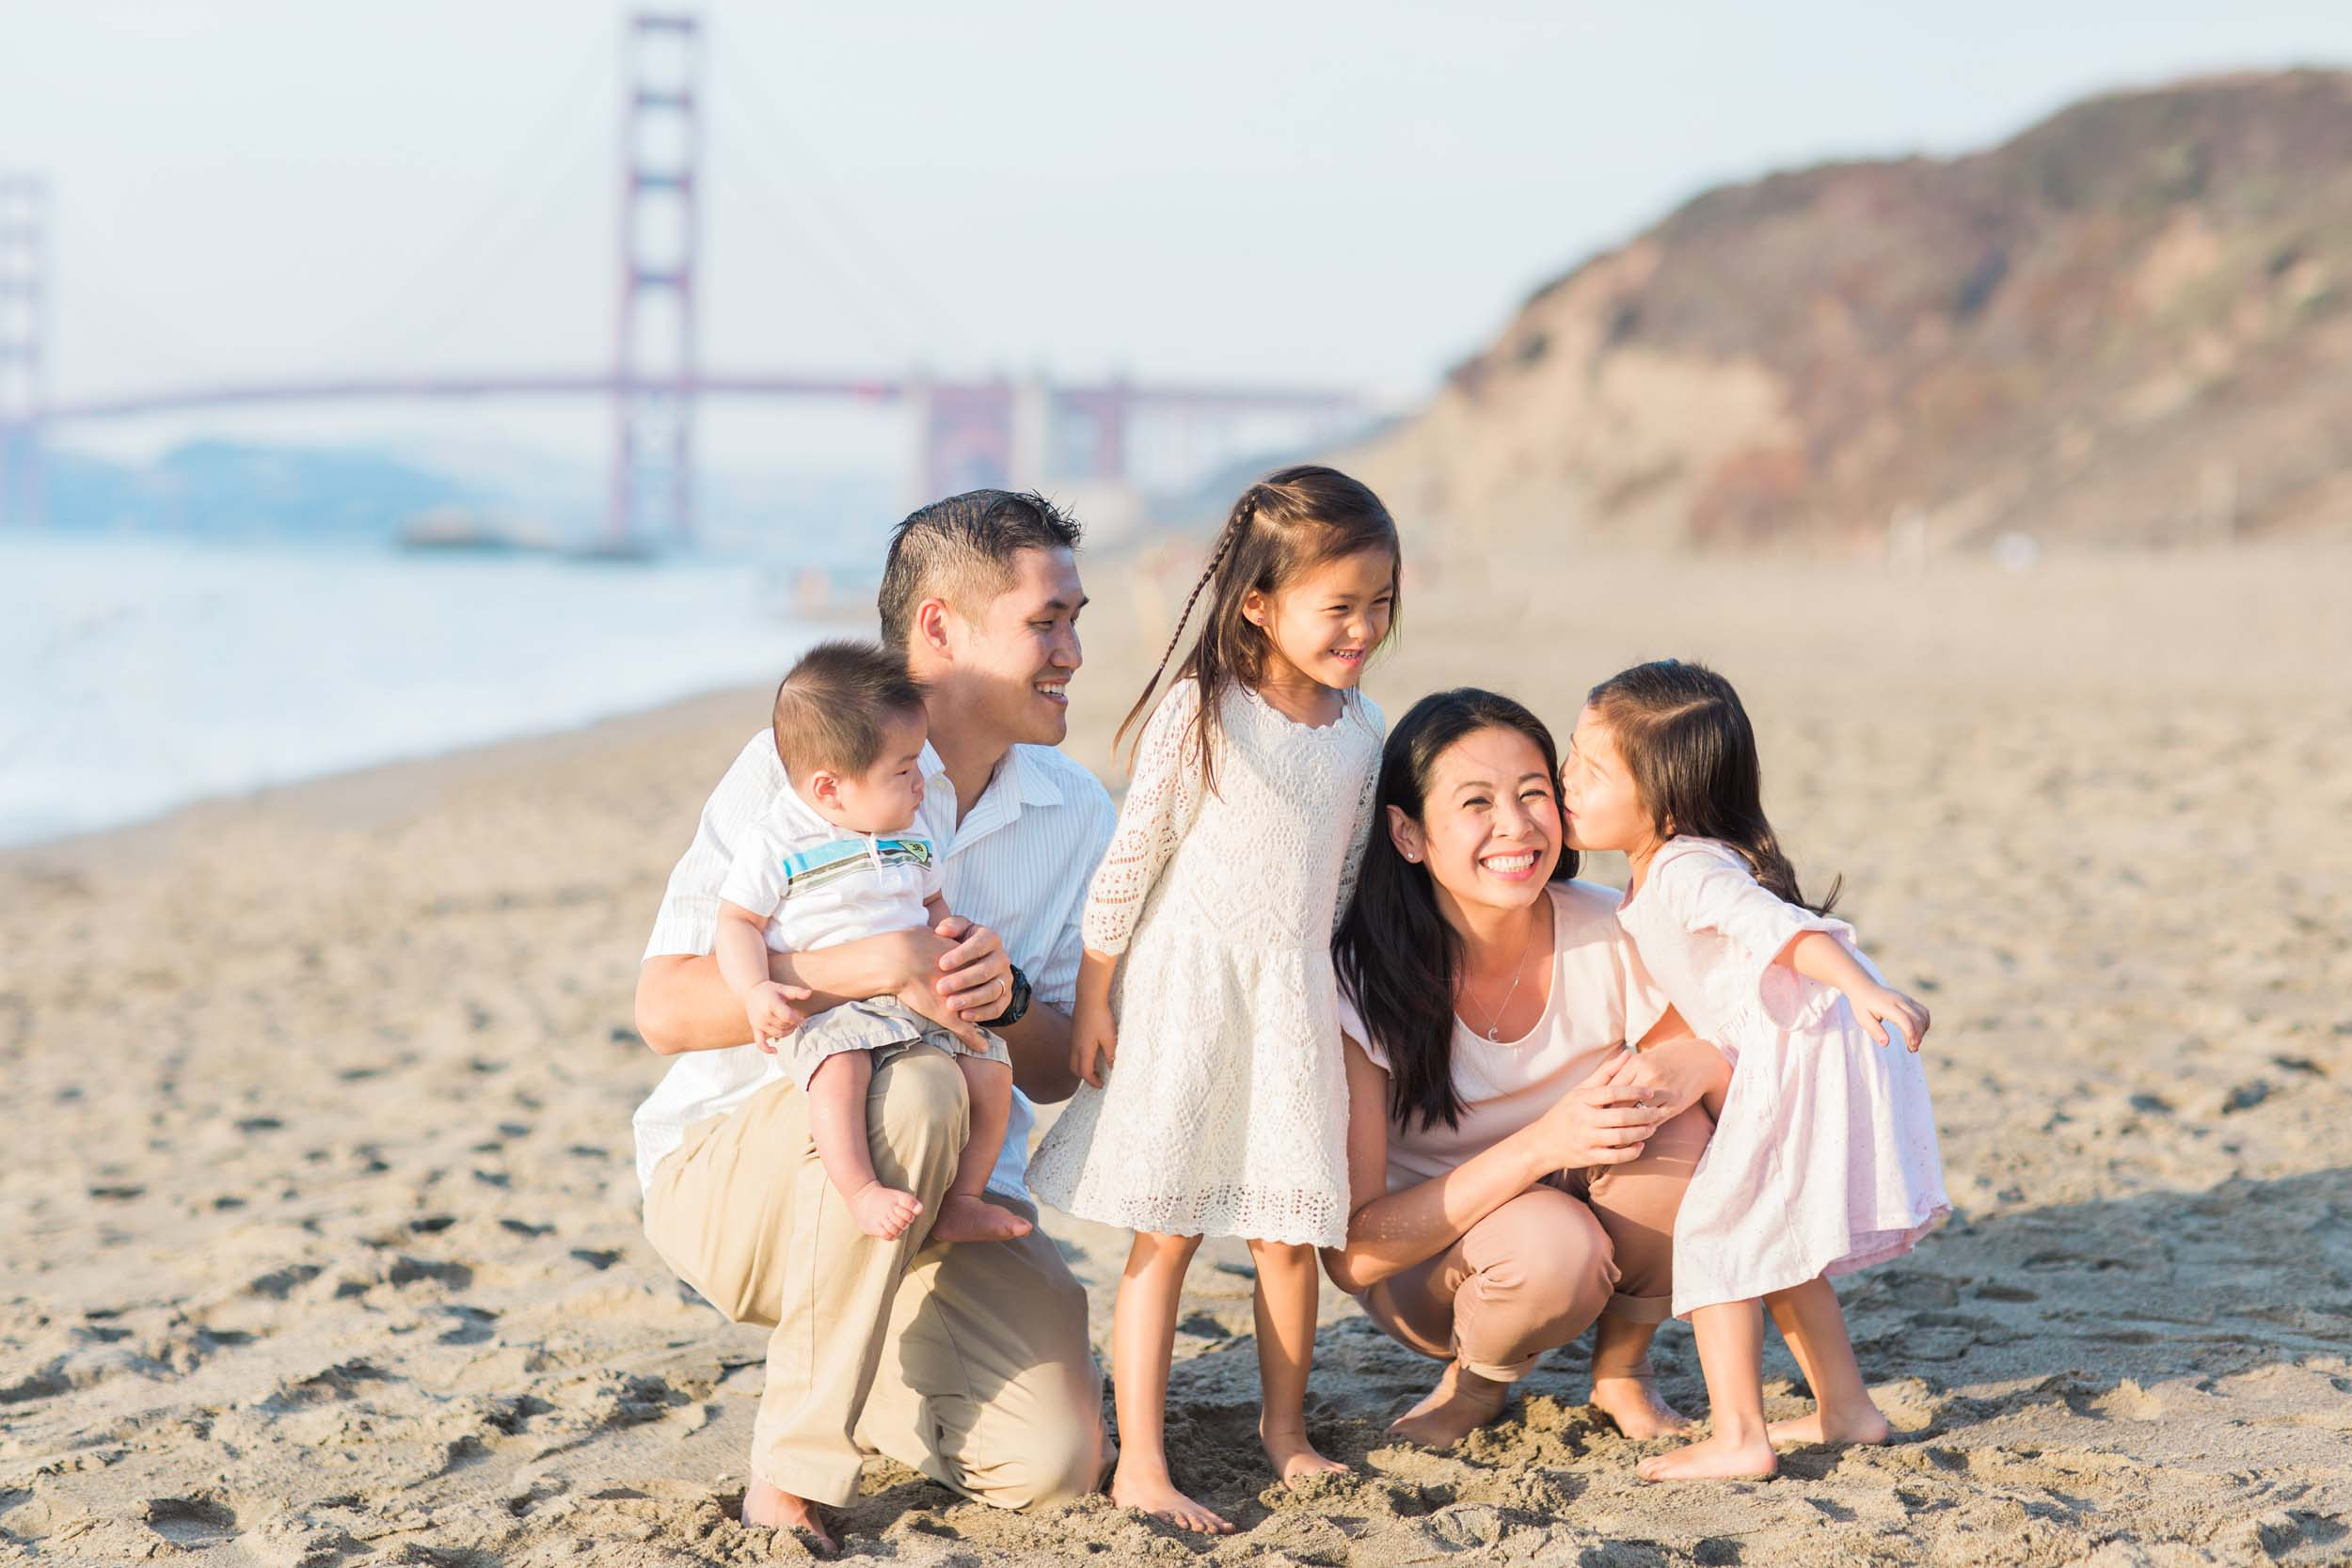 A family smiles at each other on a beach in San Francisco.